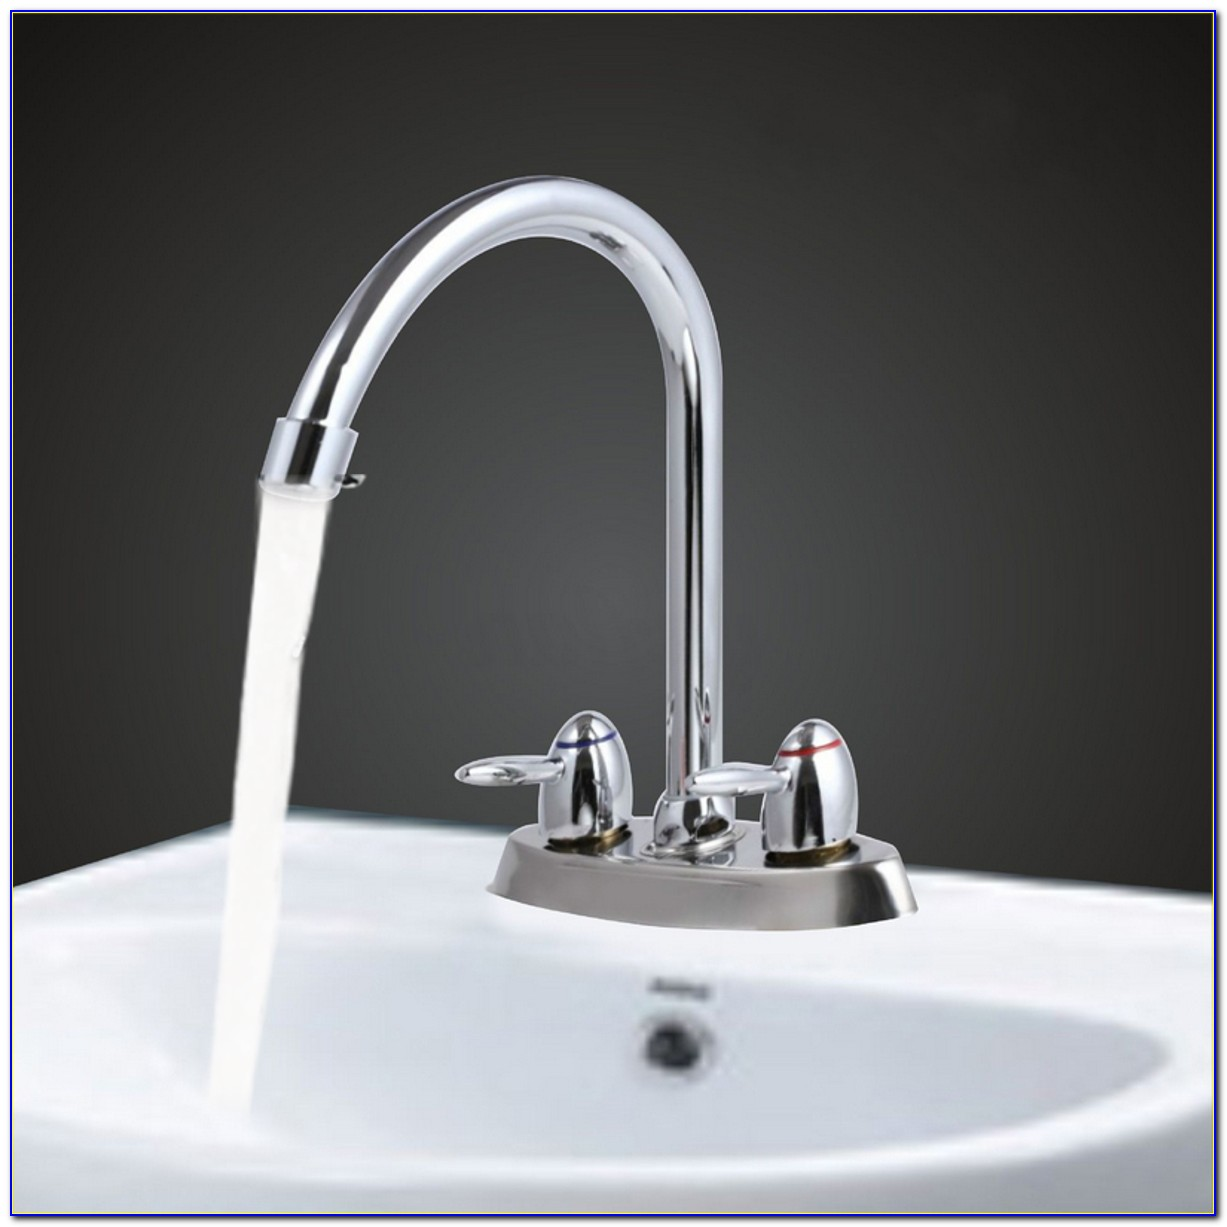 3mtm Under Sink Dedicated Faucet Water Filter System 3mdw301